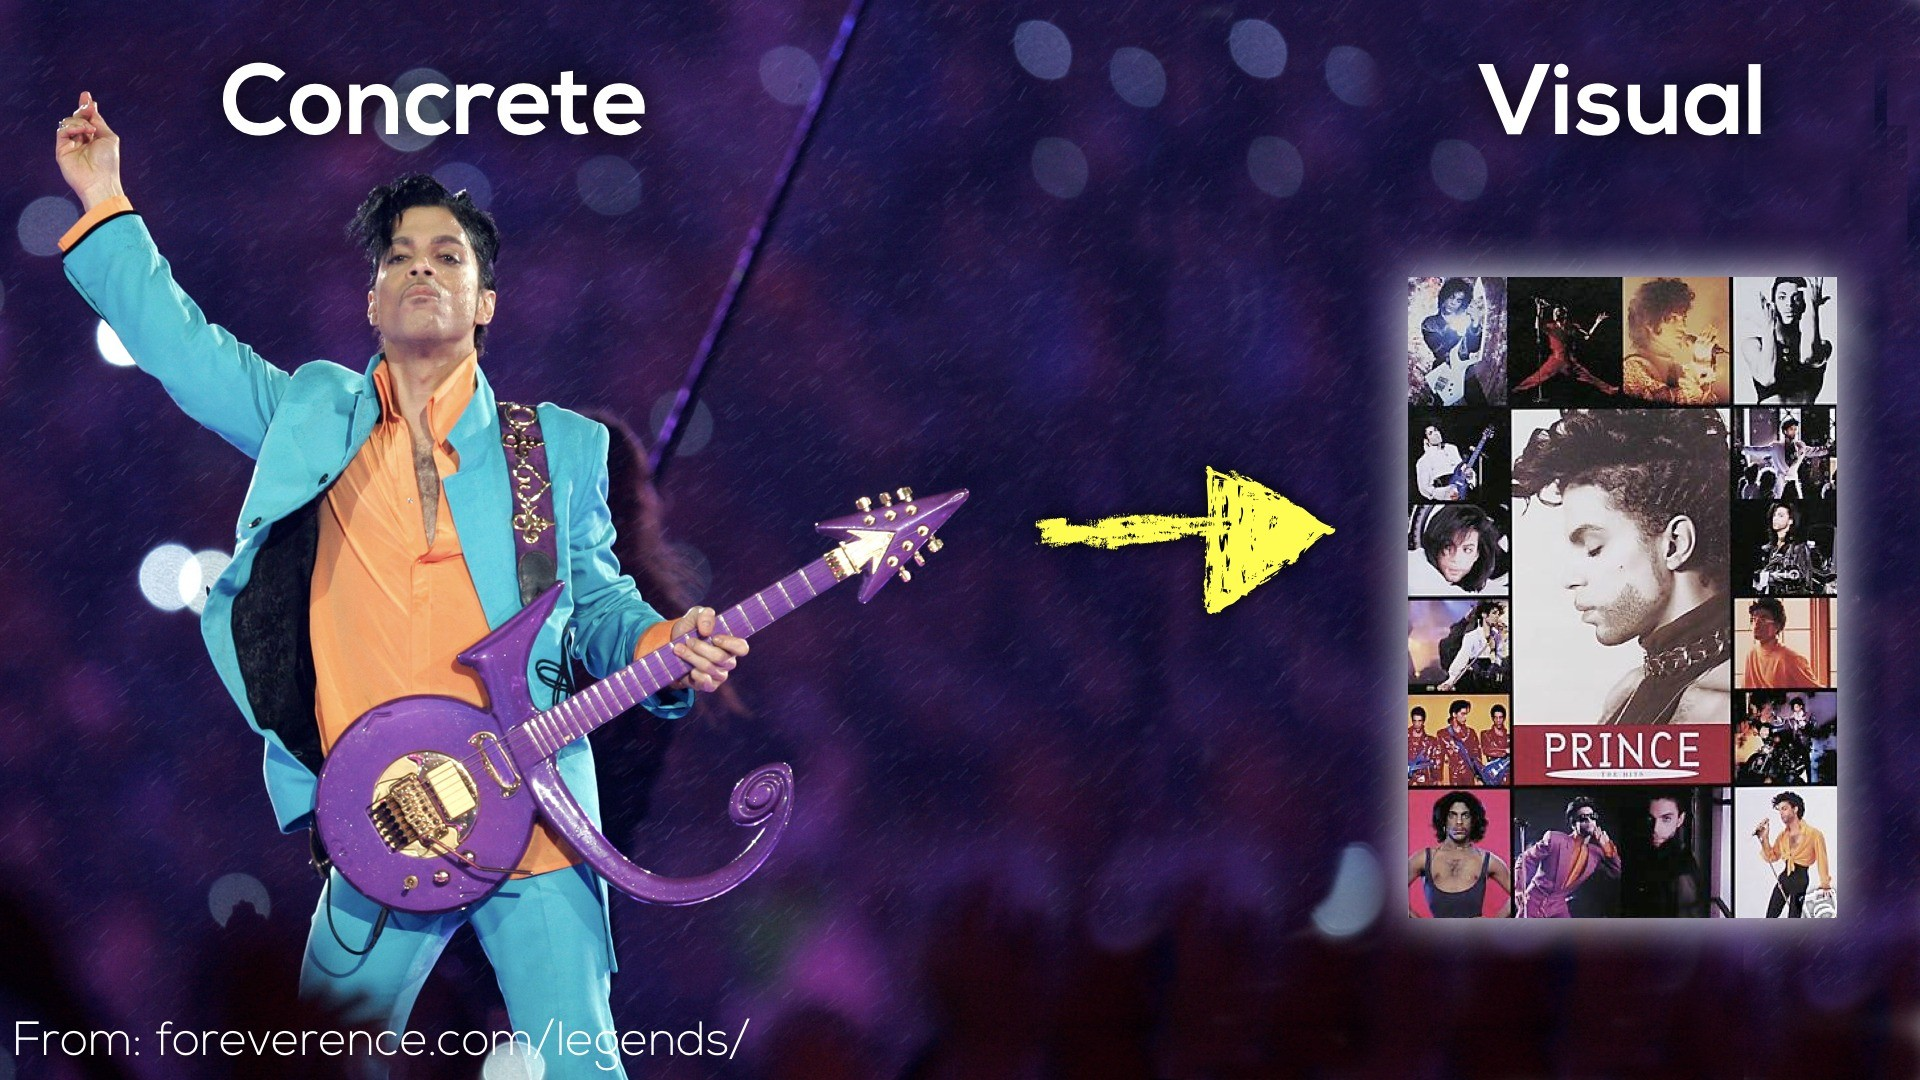 Concreteness Fading Model - Prince in Concert to Posters to Visualize